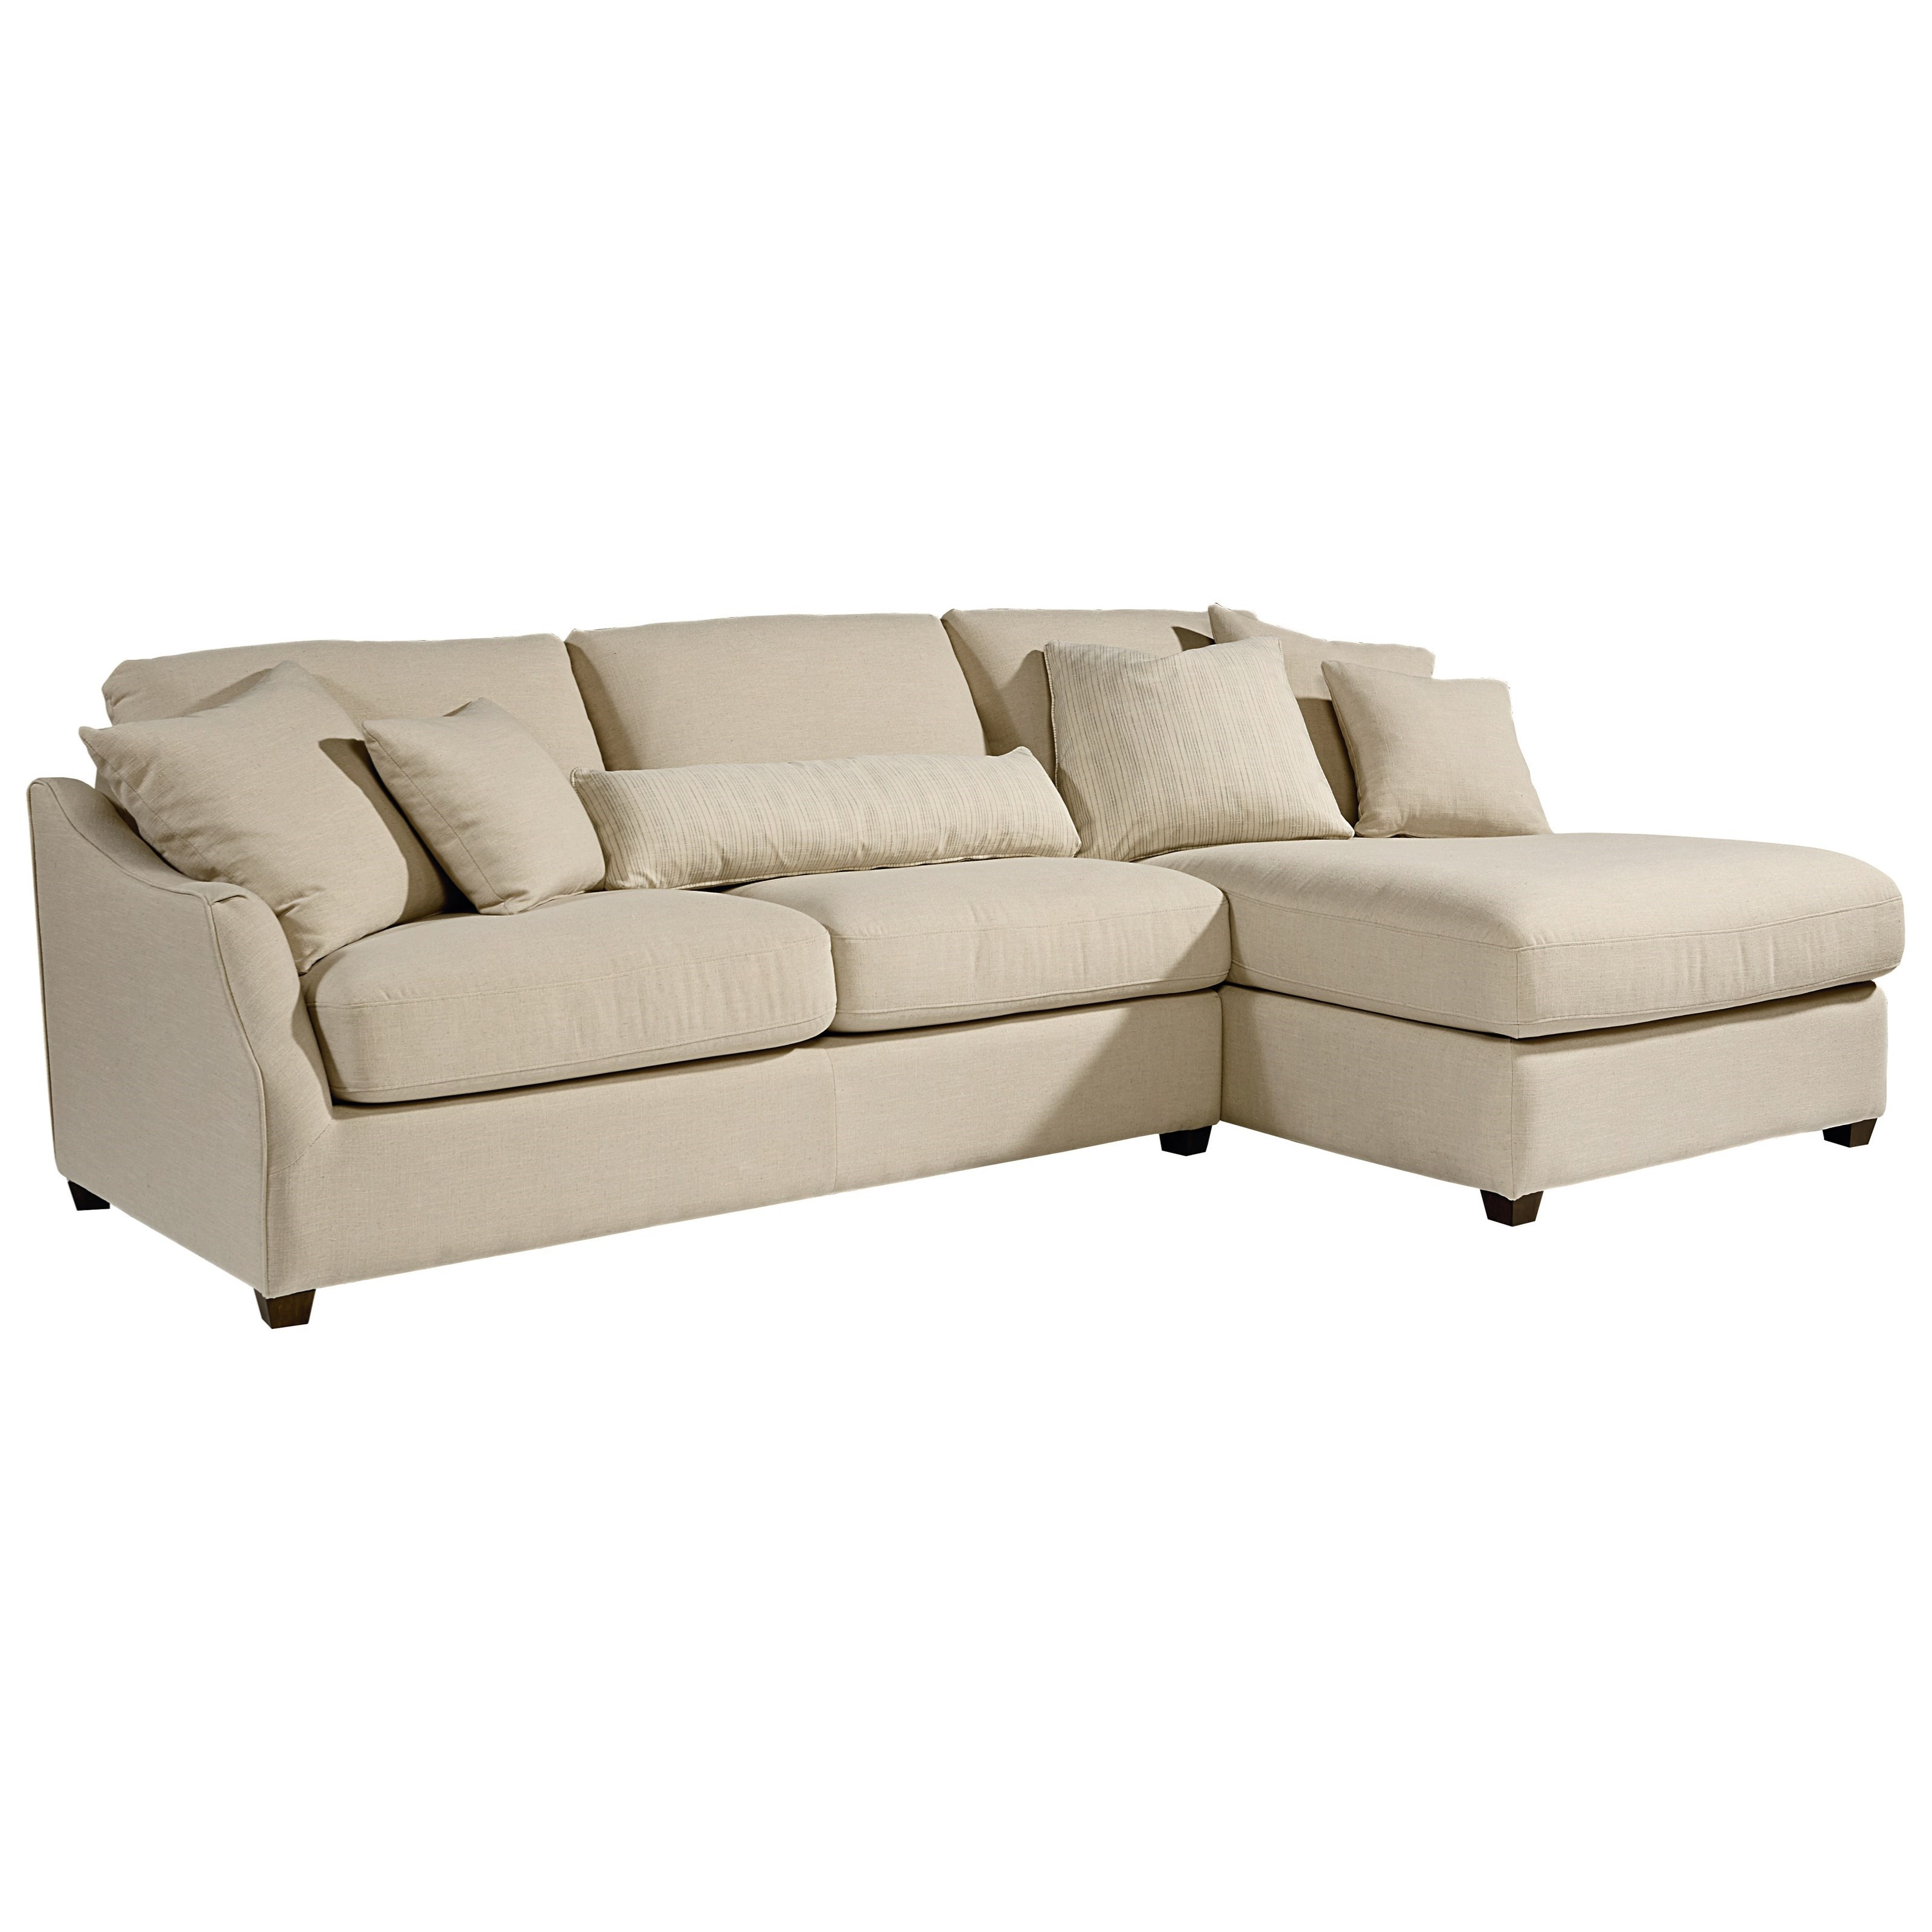 Magnolia Homejoanna Gaines Homestead Sofa Chaise With Laf Chaise Regarding Newest Magnolia Home Homestead 3 Piece Sectionals By Joanna Gaines (View 18 of 20)